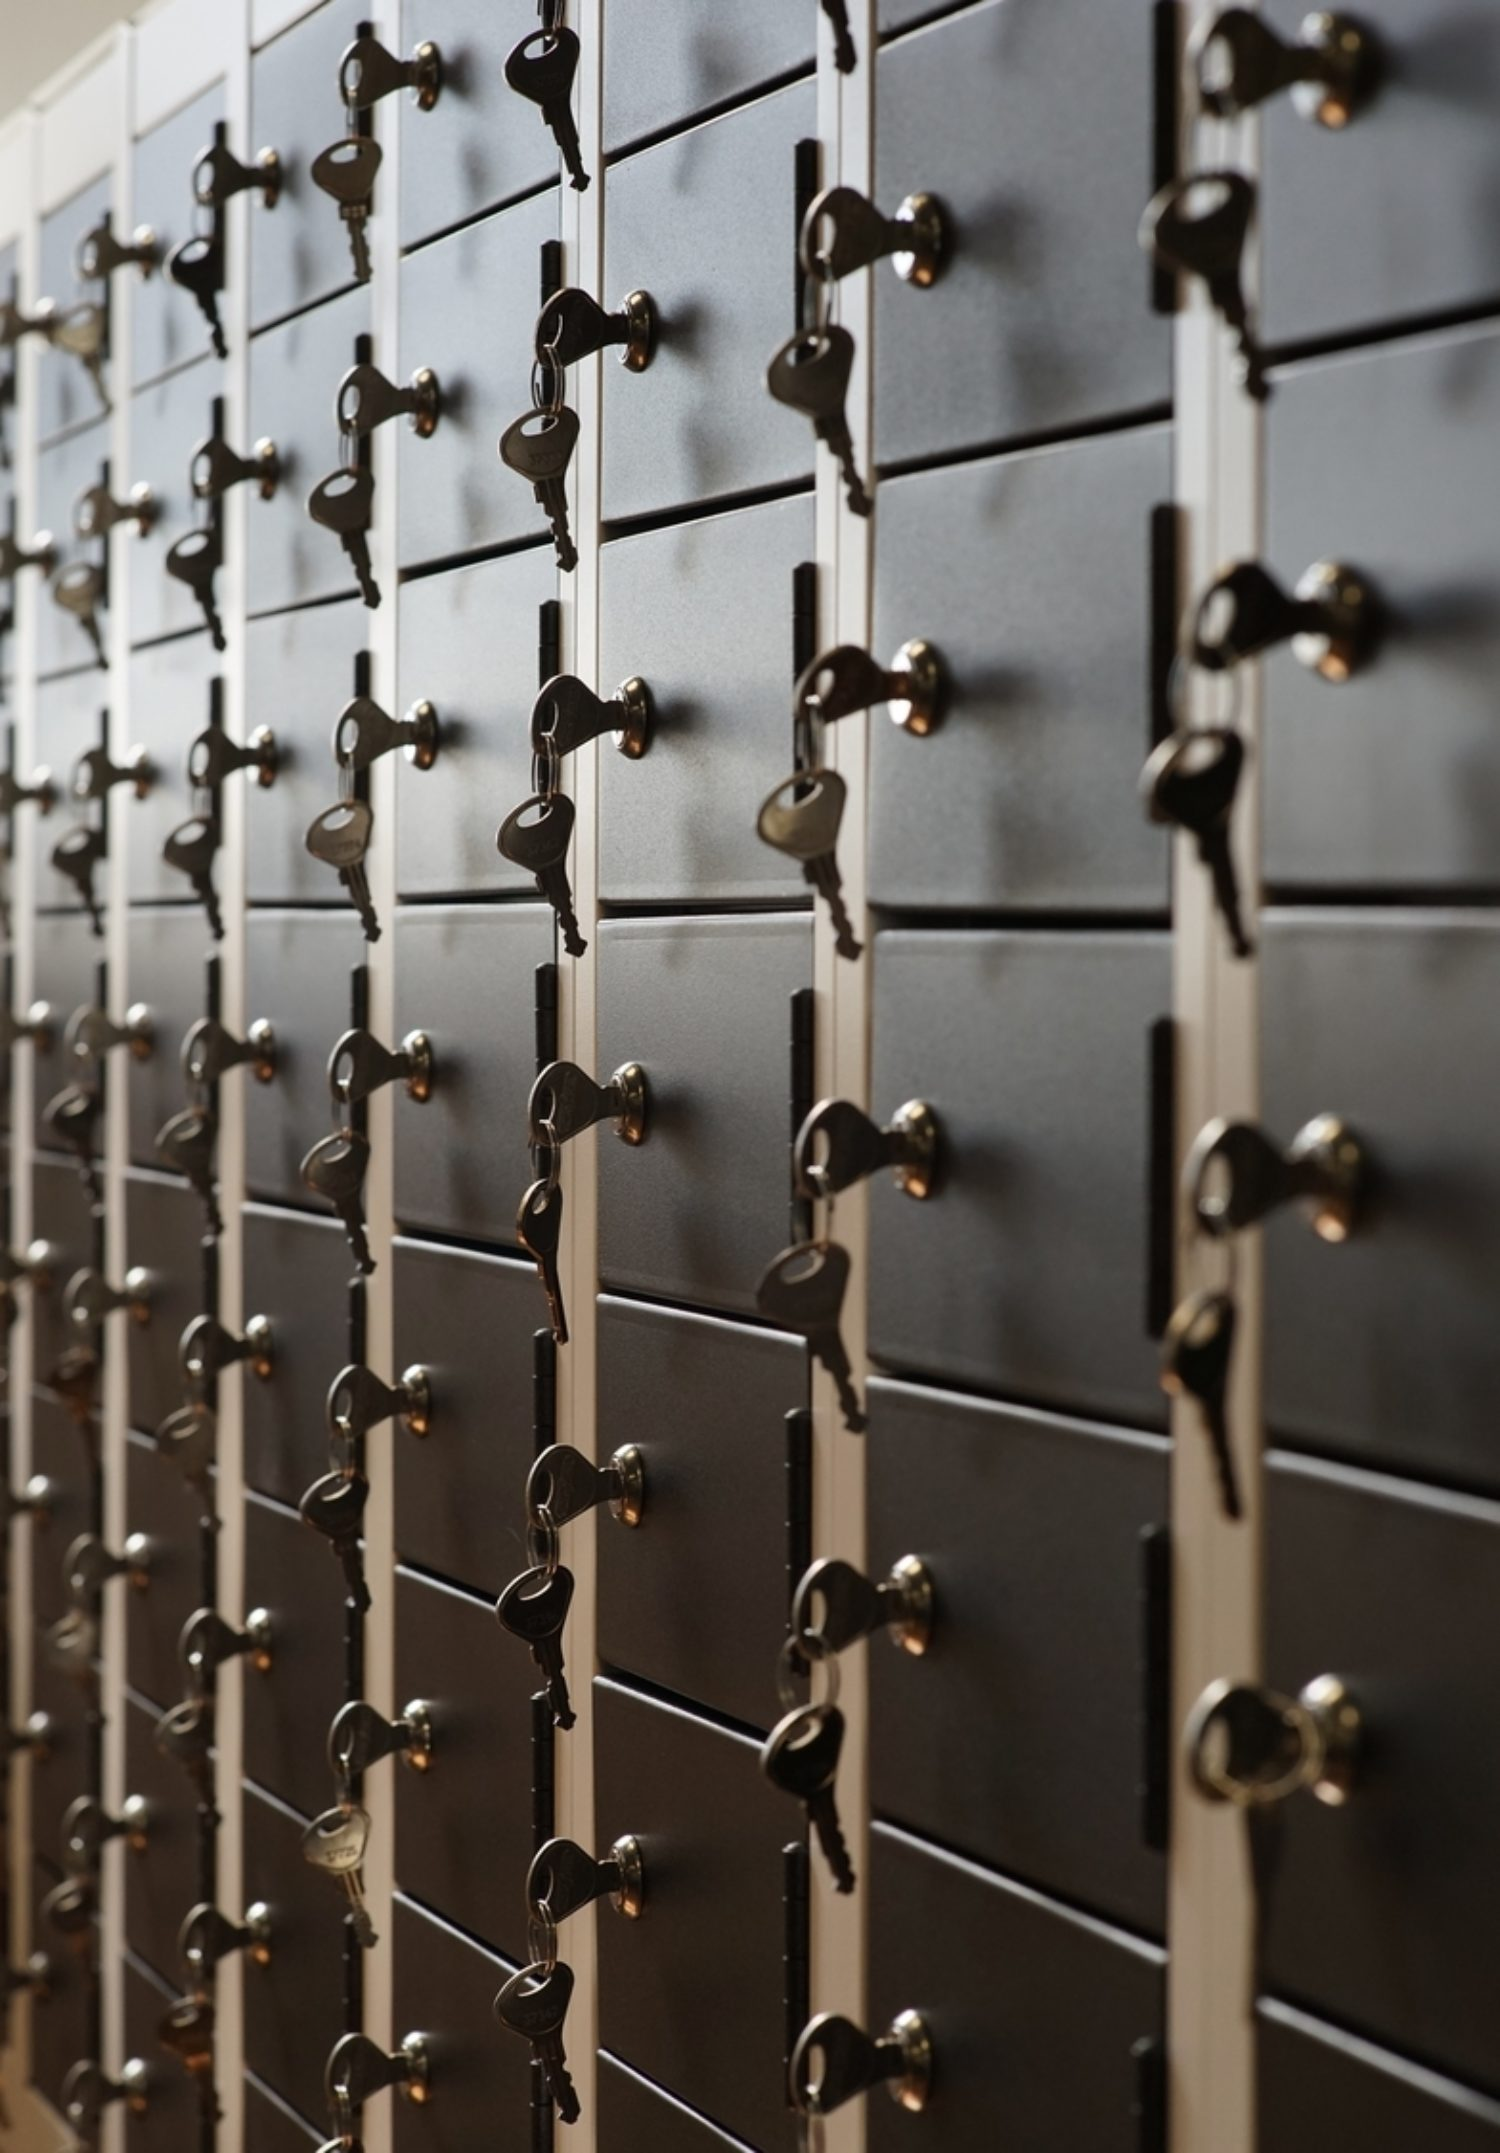 Royal Navy keys and lockers in secure office design